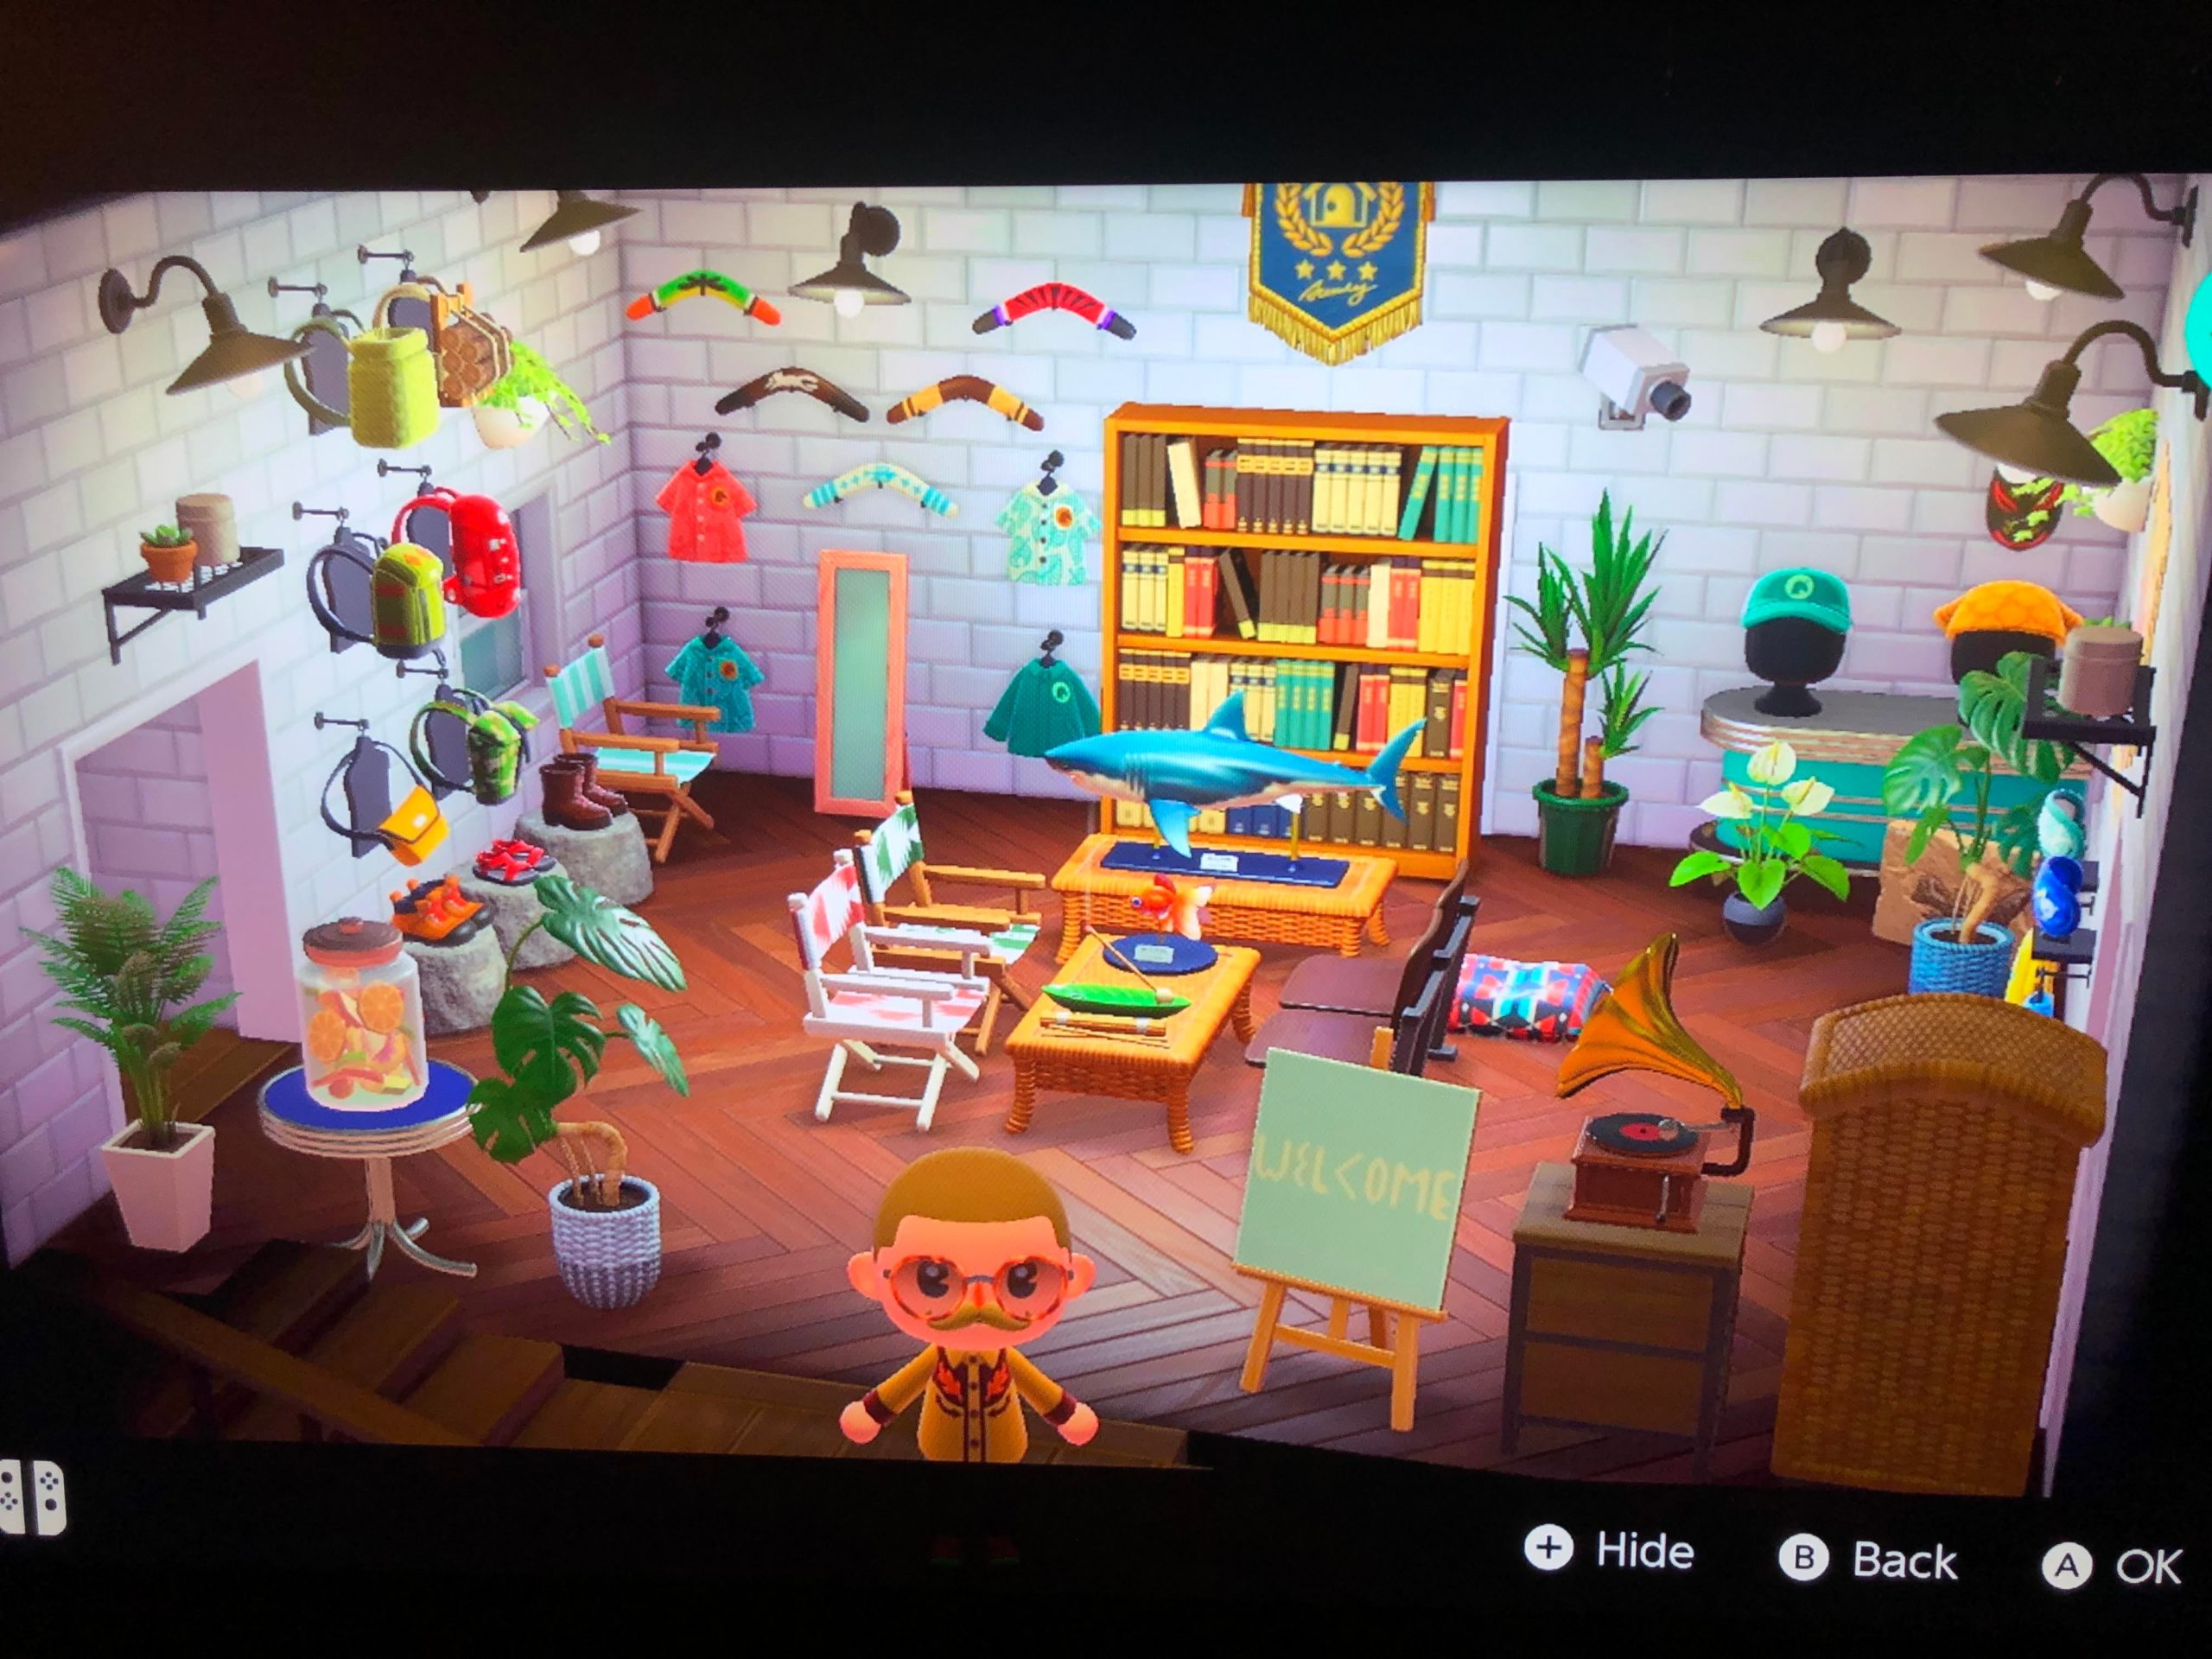 the first room In my house is the nook visitor center on the island. I also have rick and mortys garage, a corrupt office space, Salvador Dali basement, and a nice bedroom. Just paid off my home loans and can finally get creative with my spaces! Hope everyone is coping alright in these tough times. : AnimalCrossing